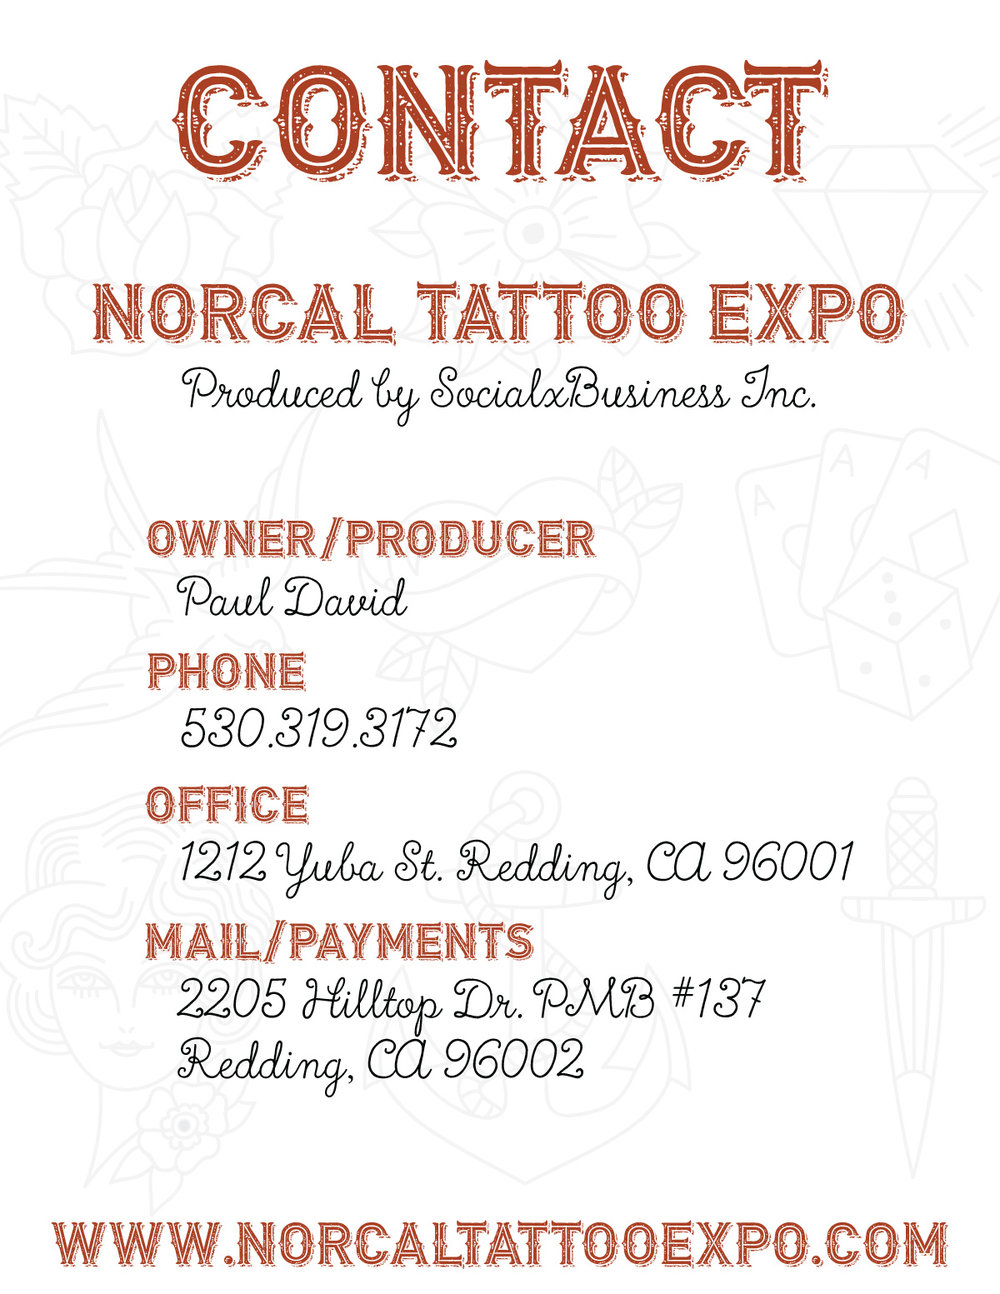 NorCal Tattoo Expo Redding CA.jpg